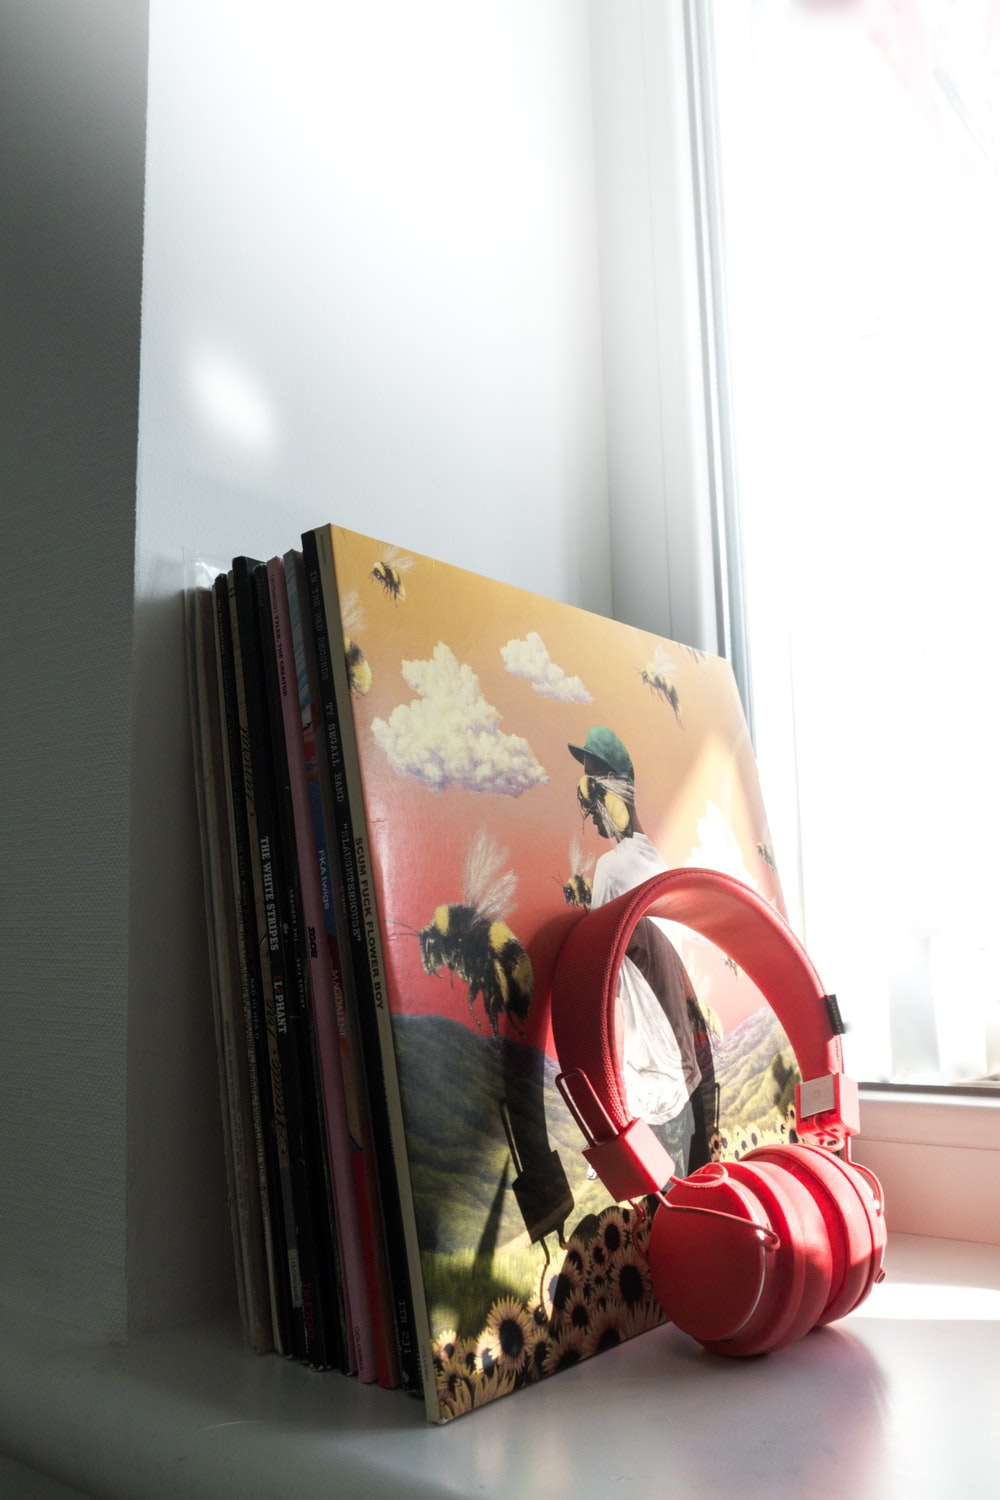 red and white headphones on books